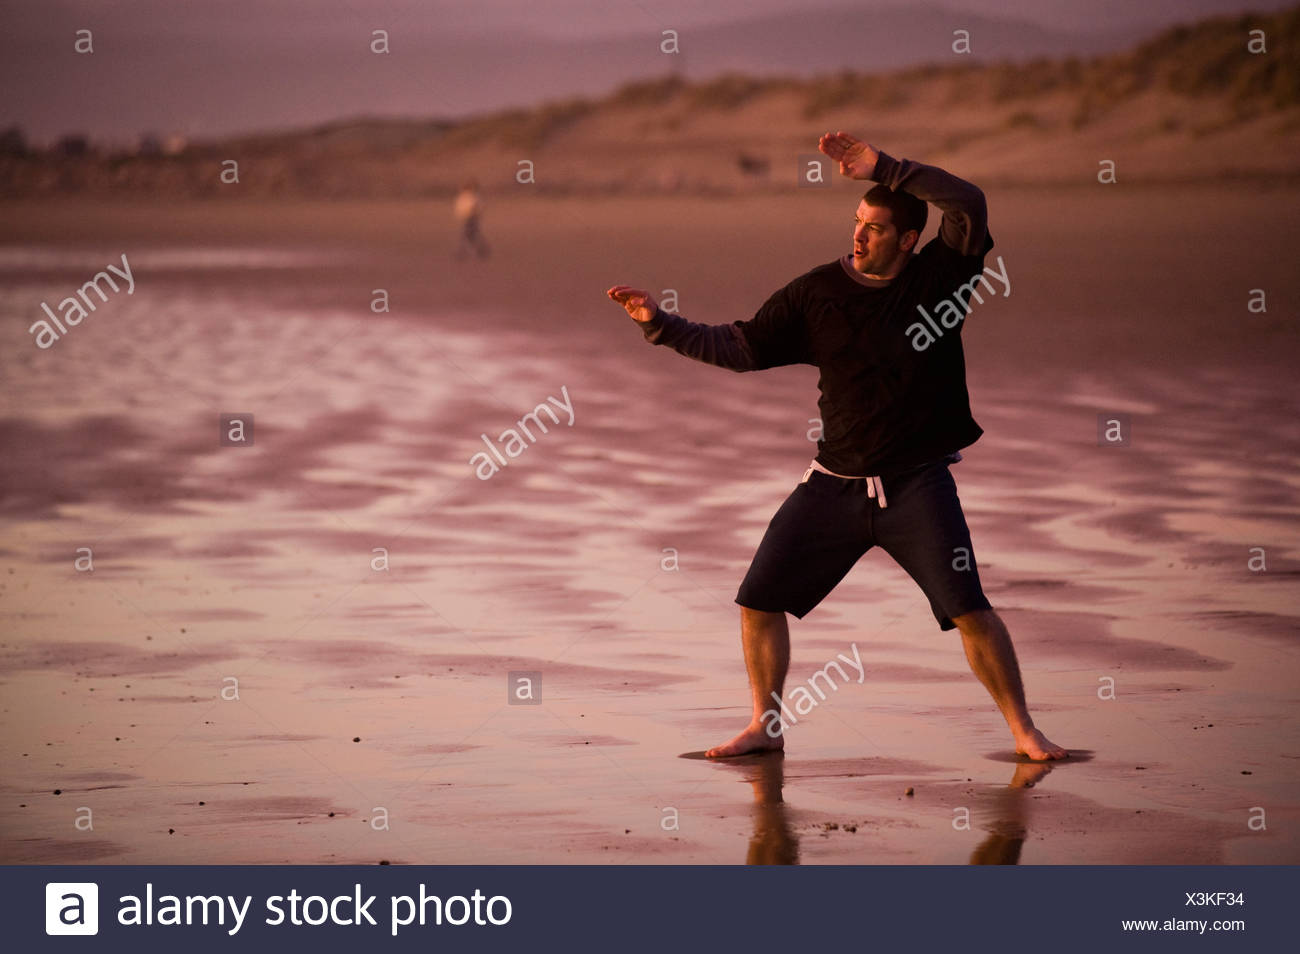 One mid adult man practices Taekwondo on the beach at sunset in Morro Bay, California. - Stock Image